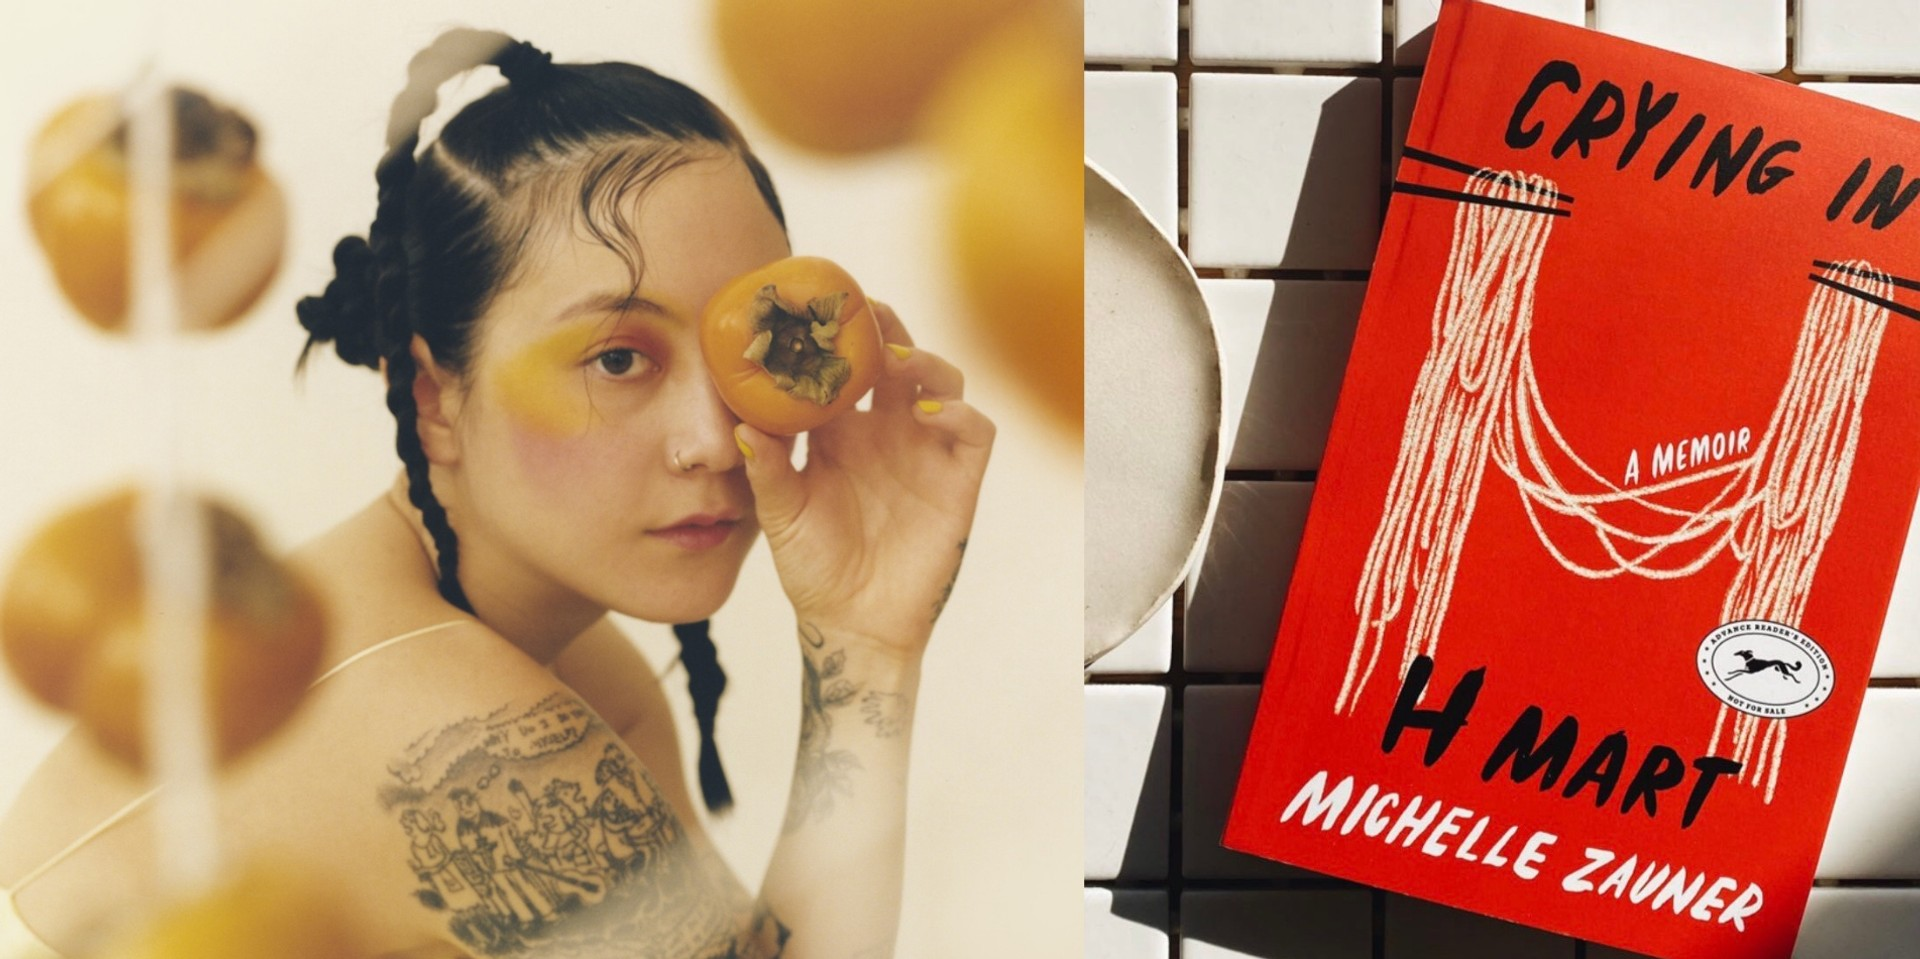 Japanese Breakfast's memoir 'Crying in H Mart' to be adapted into a film for MGM's Orion Pictures